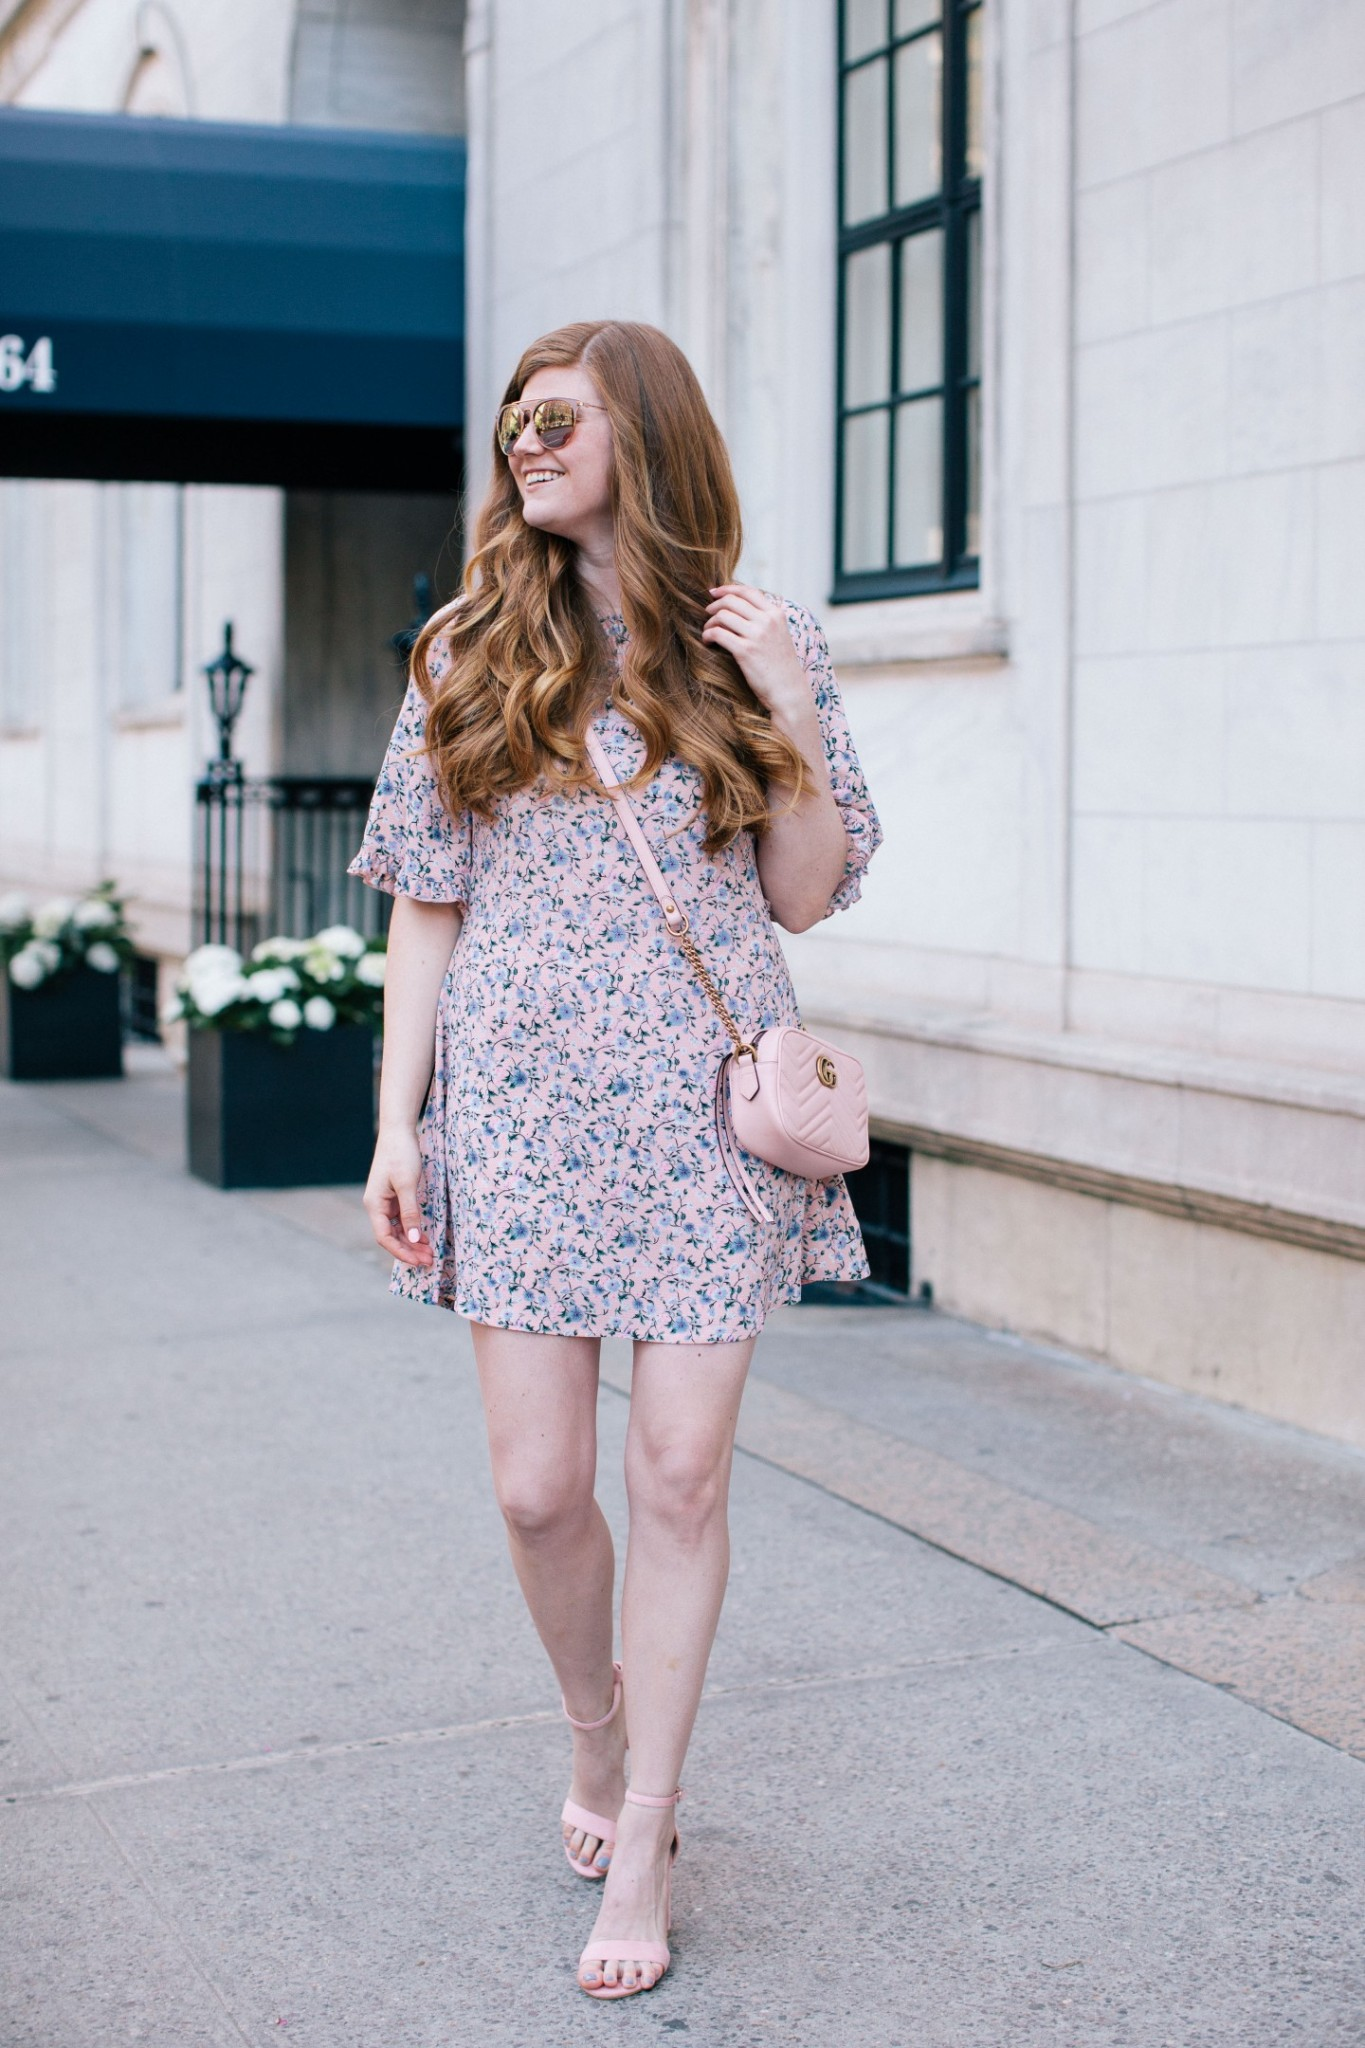 Spring Style featured by top London fashion blogger Mollie Moore; Image of a woman wearing Boohoo dress, Boohoo cardigan, Boohoo heels, Gucci bag and BP sunglasses.